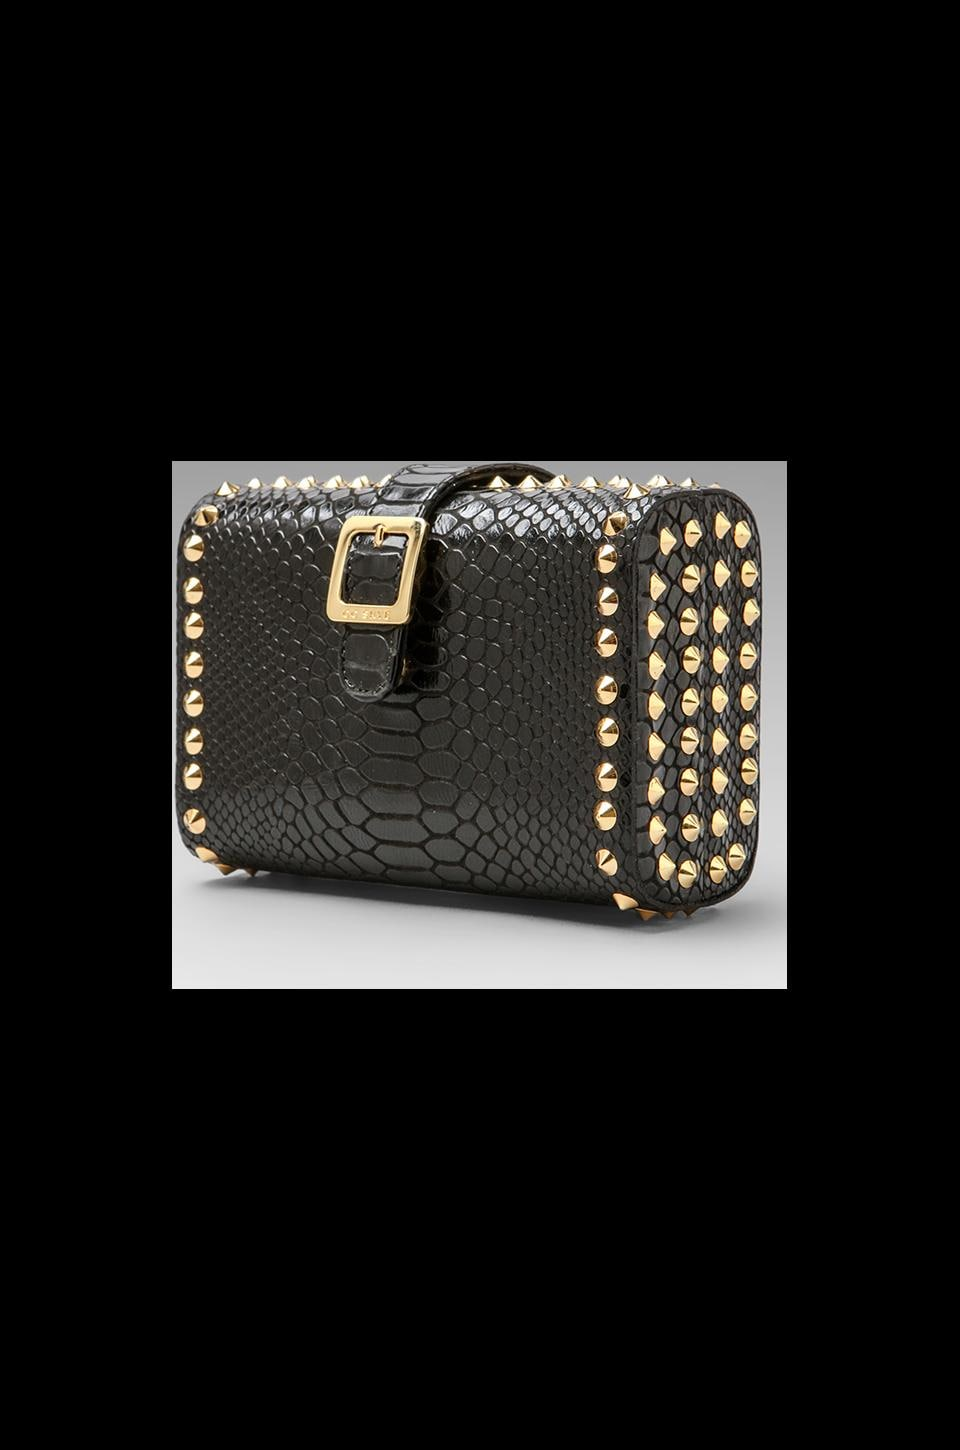 CC Skye The Red Carpet Clutch in Black Python